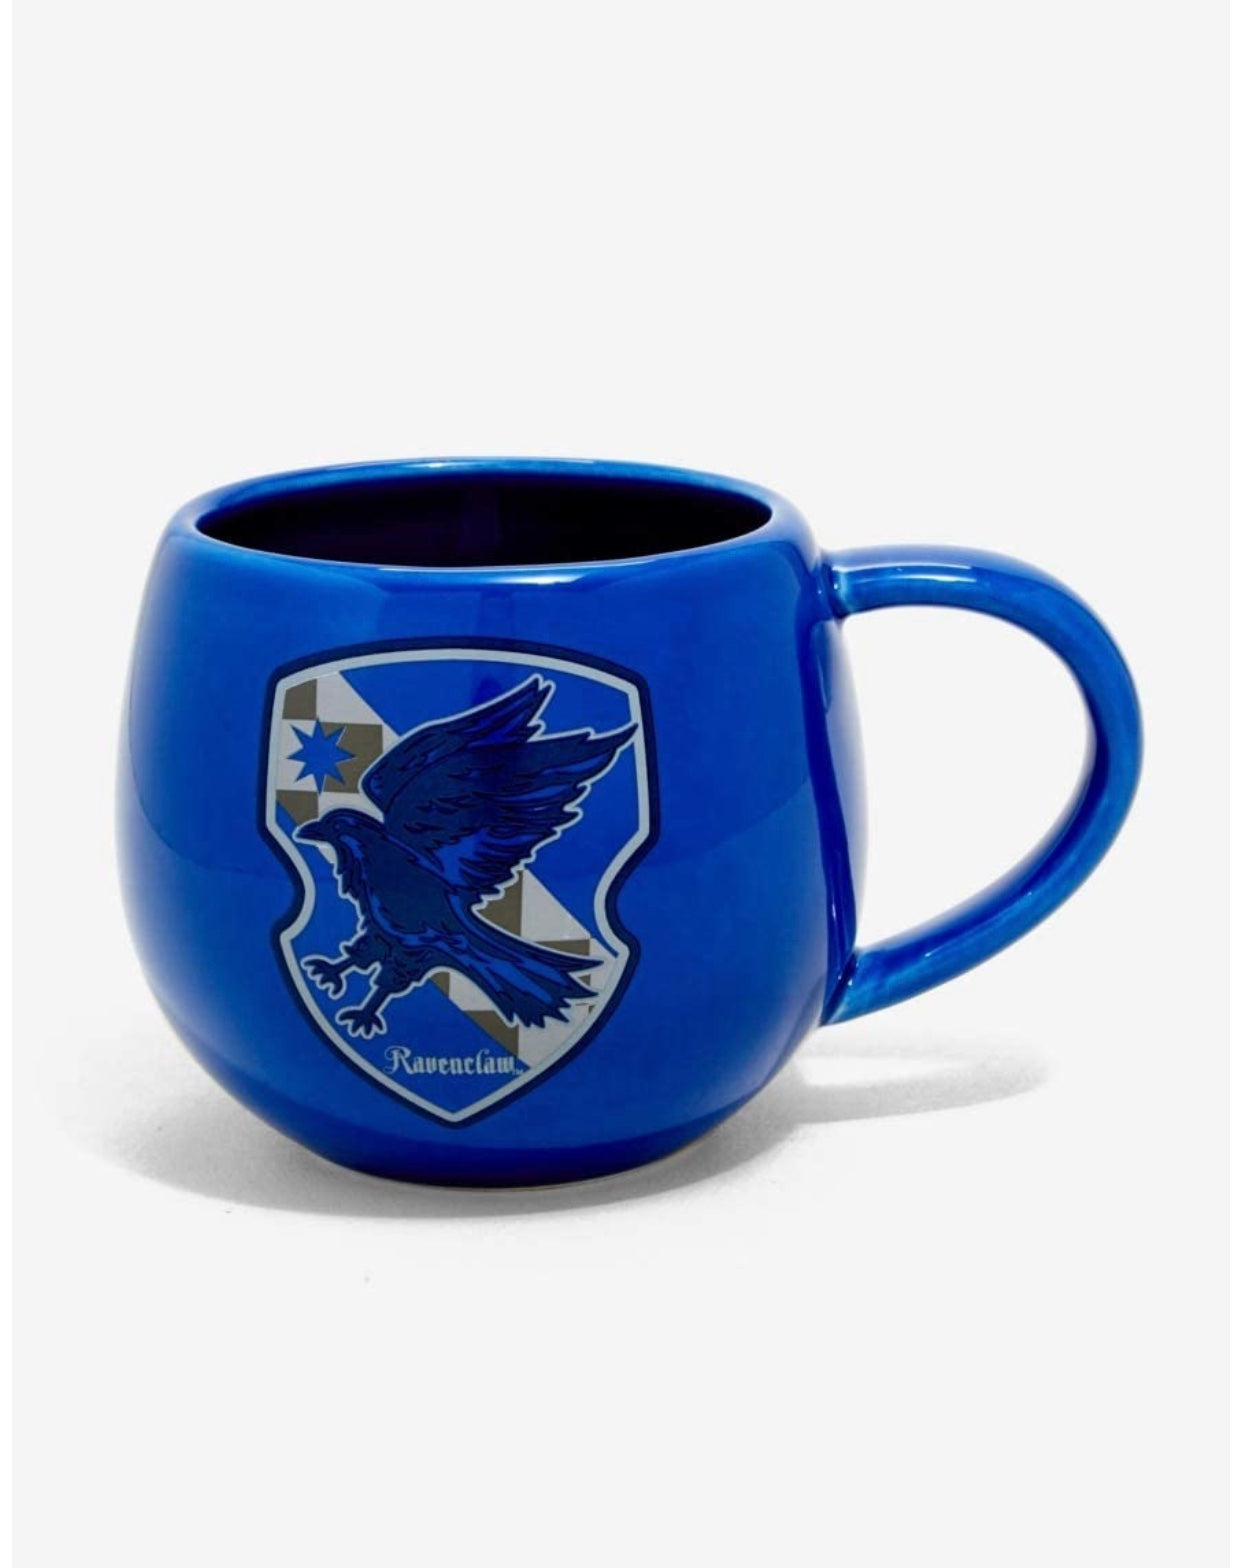 Harry Potter Raven Claw Crest Mug Coaster